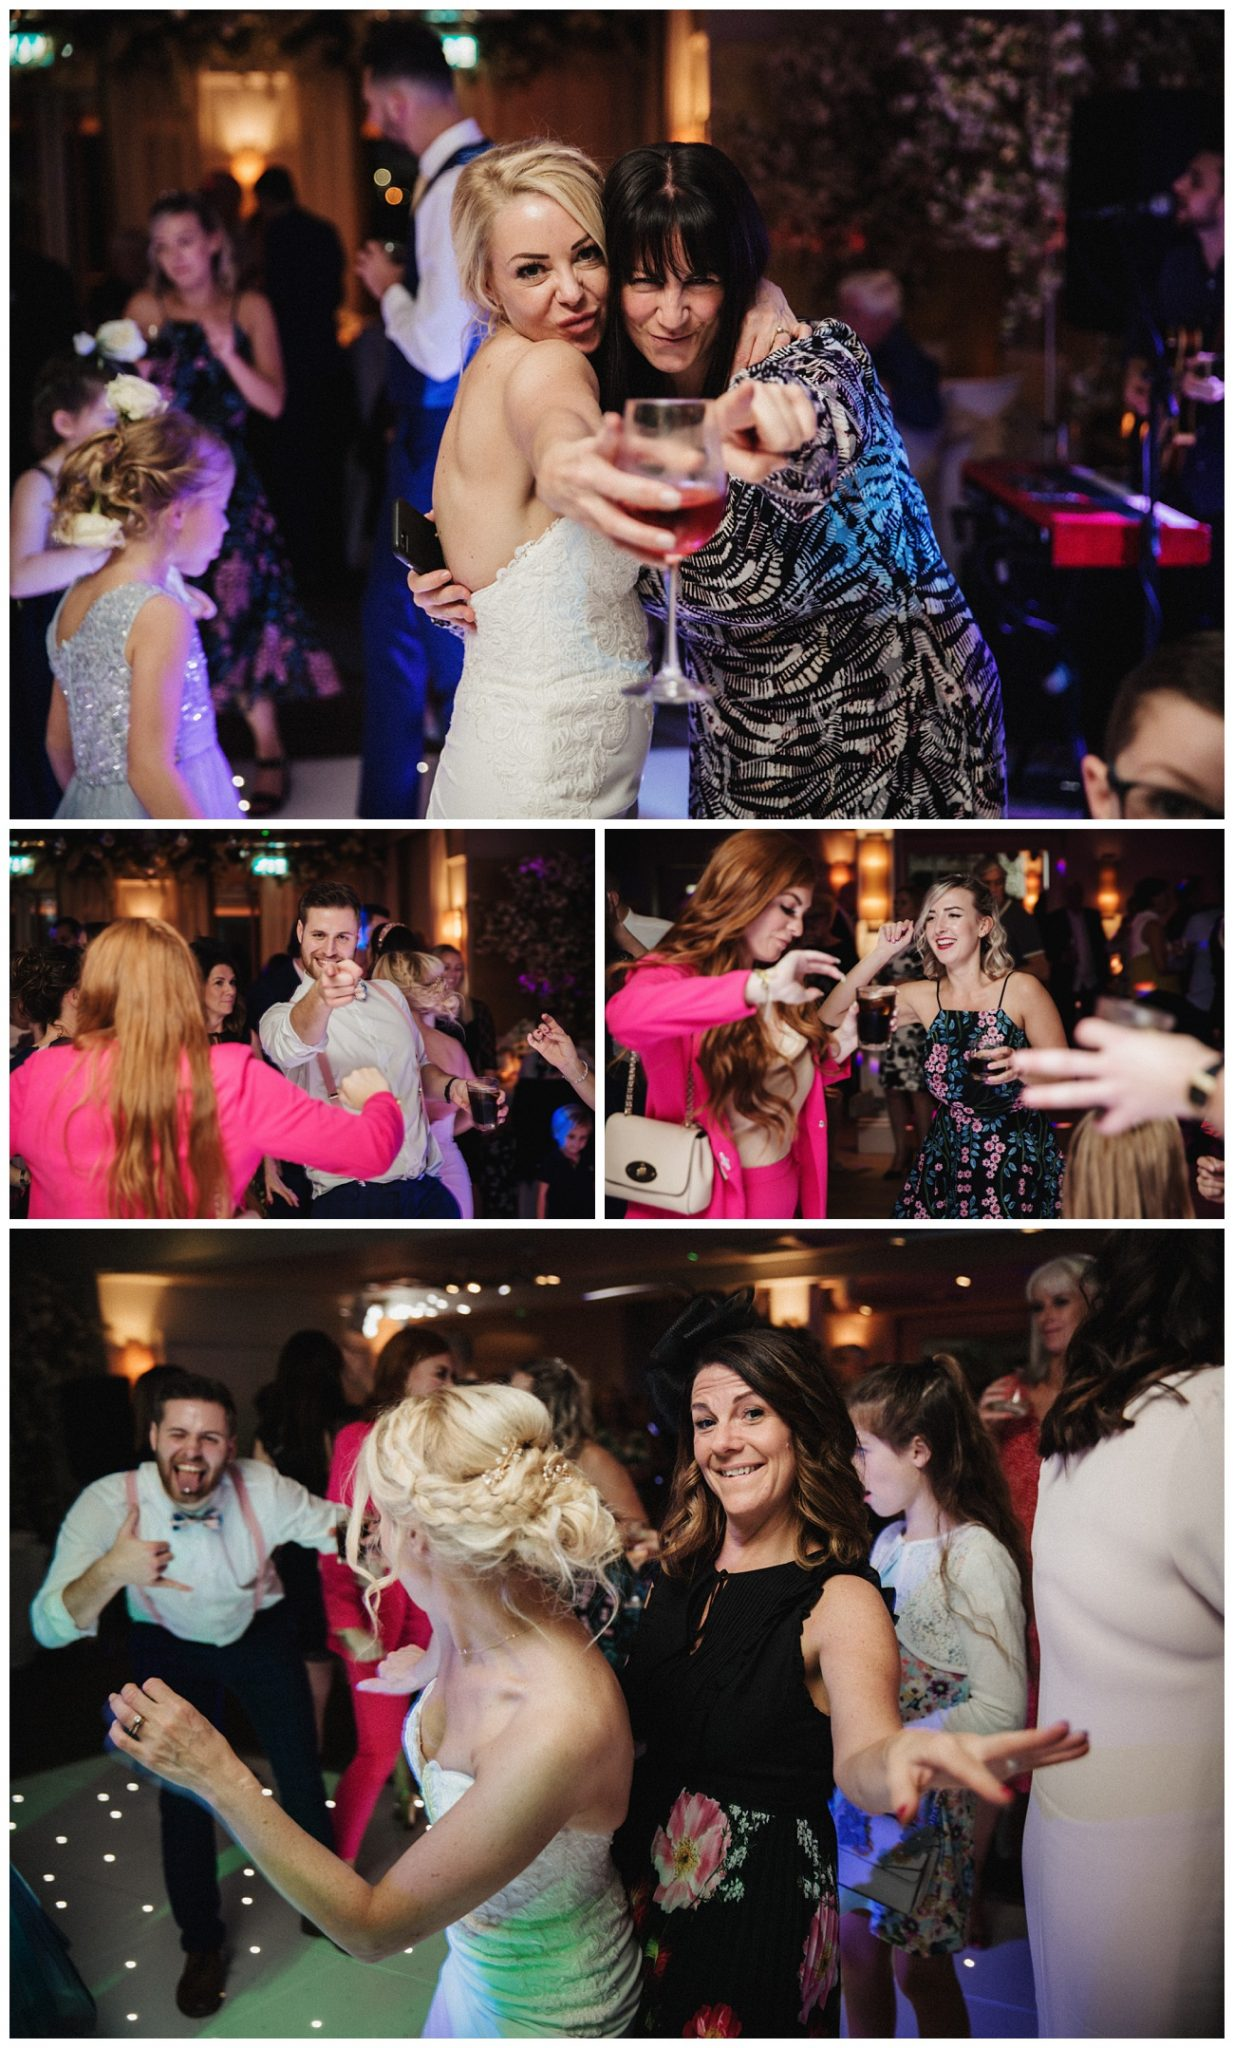 The bride dances with her guests on the dance floor